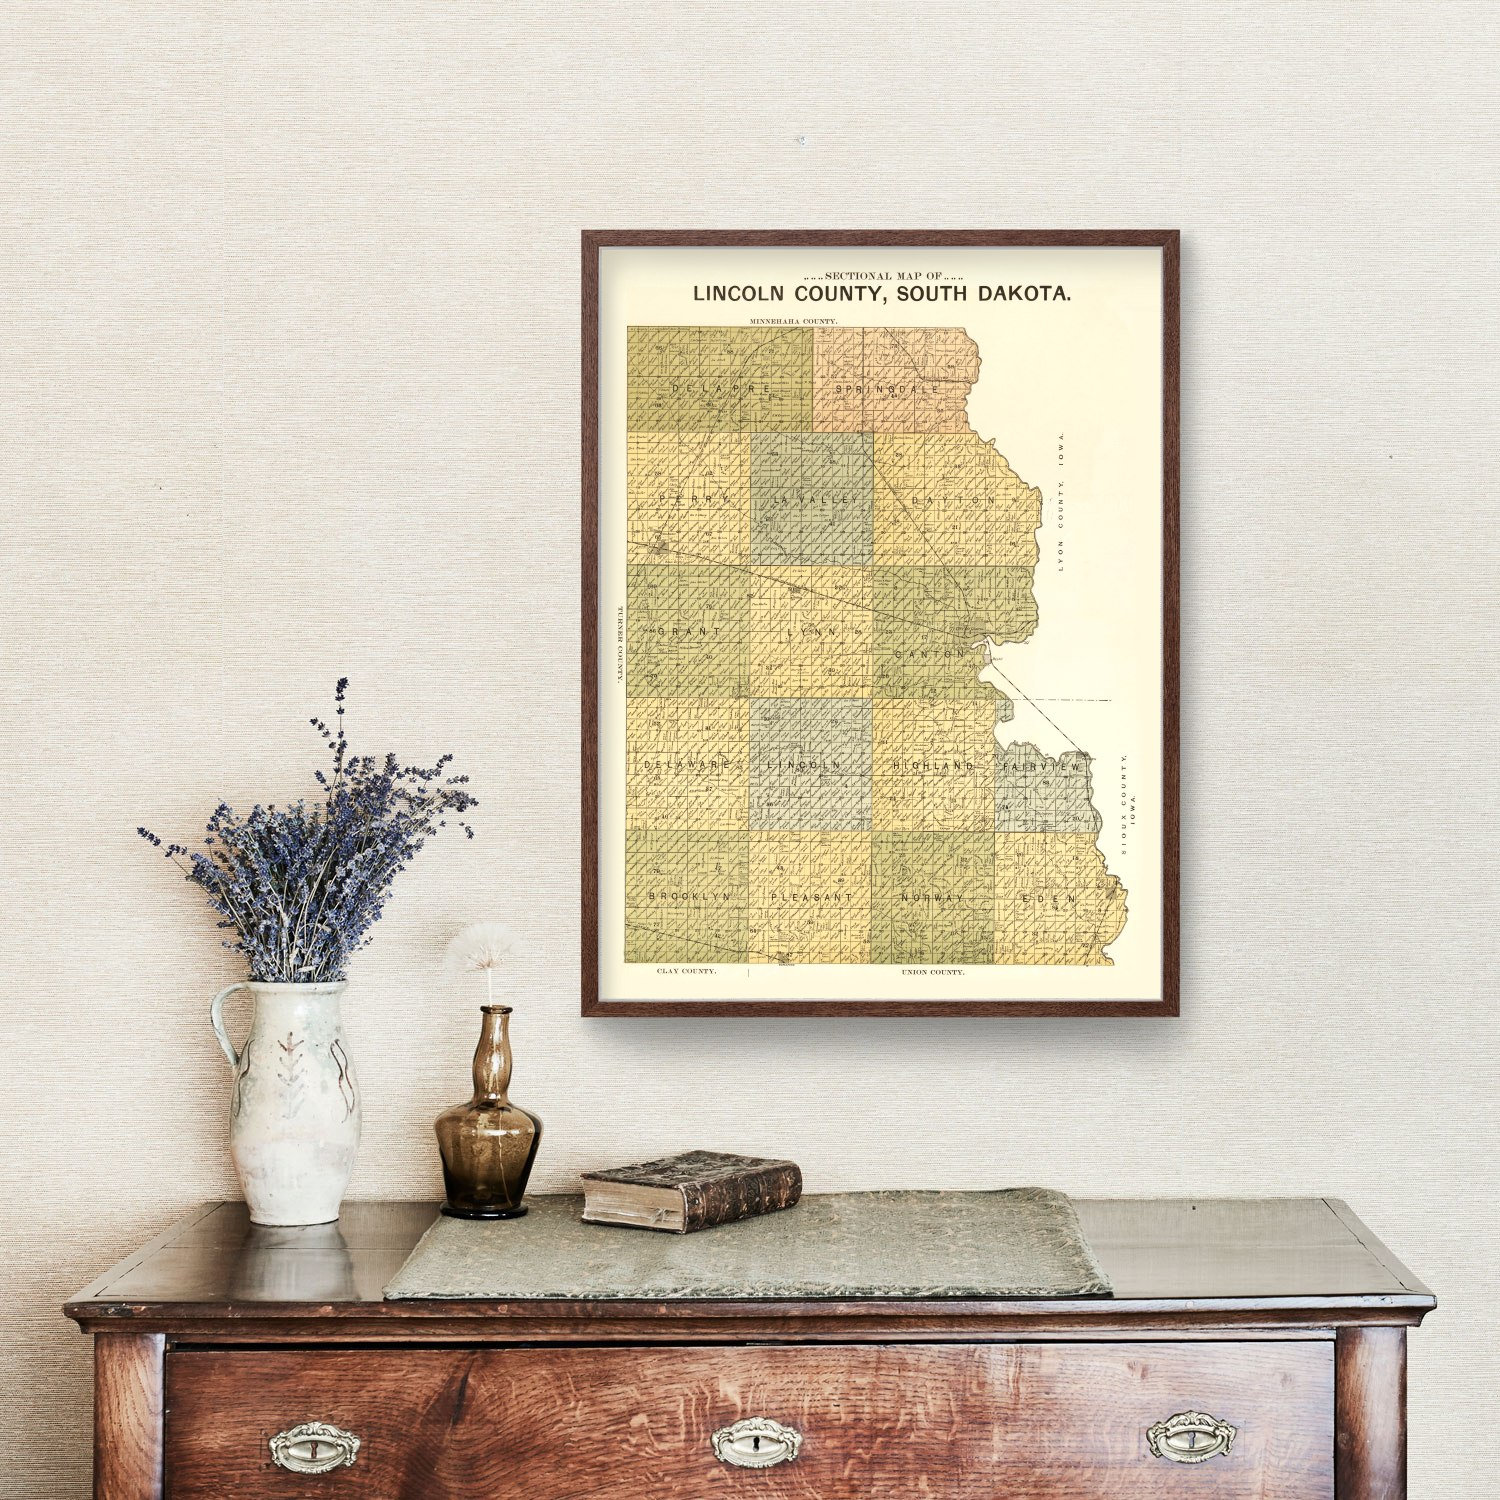 Vintage Map of Lincoln County, South Dakota 1900